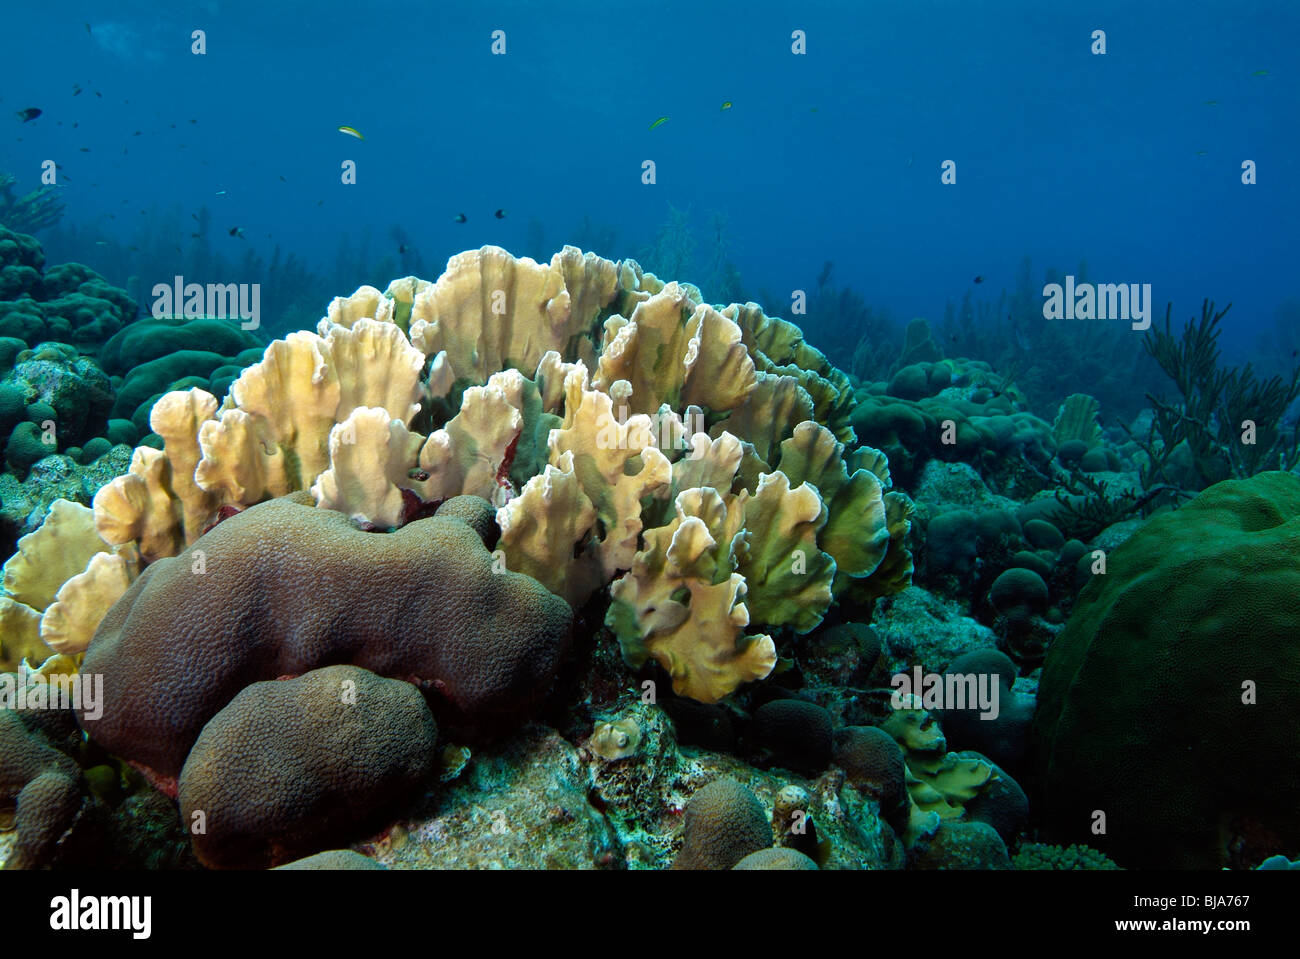 Fire coral in Bonaire. - Stock Image